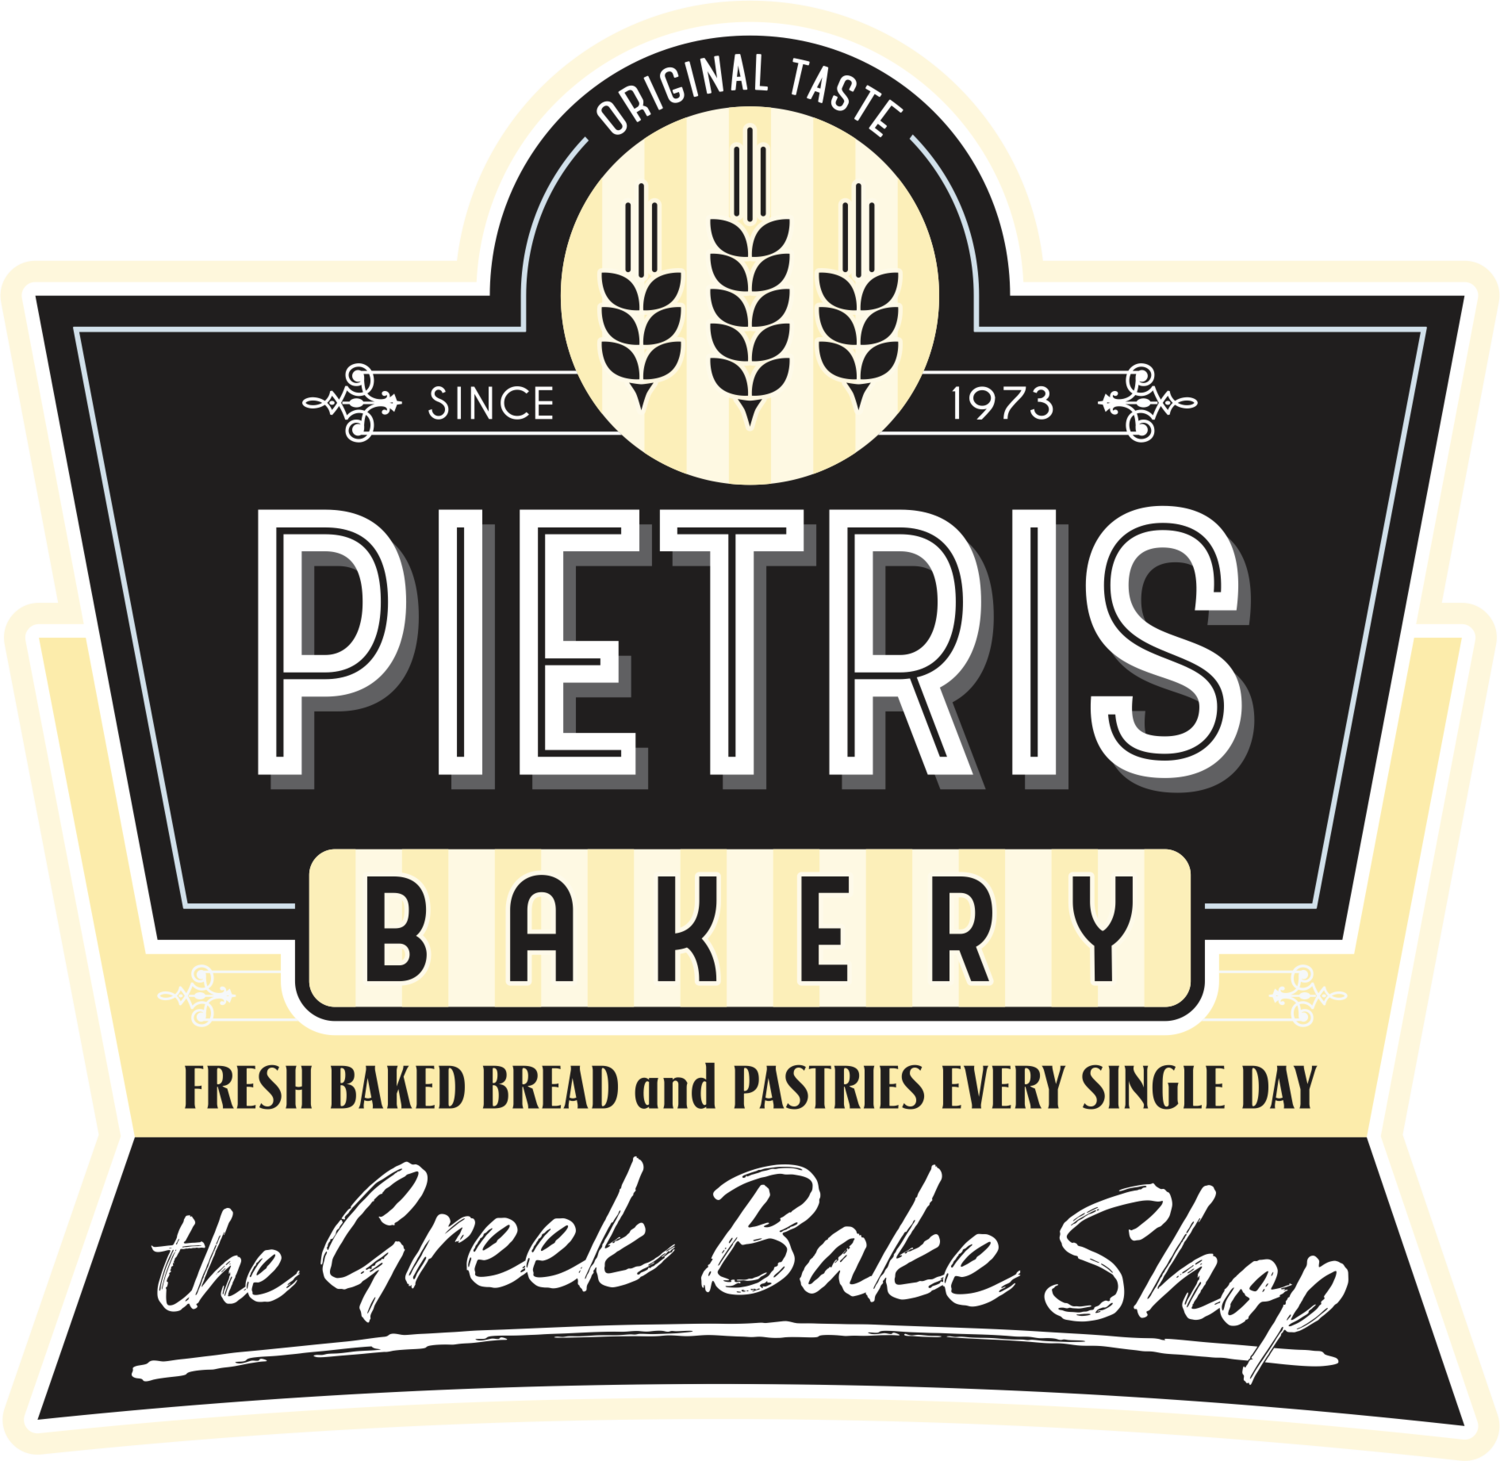 Pietris Greek Bakery & Restaurant